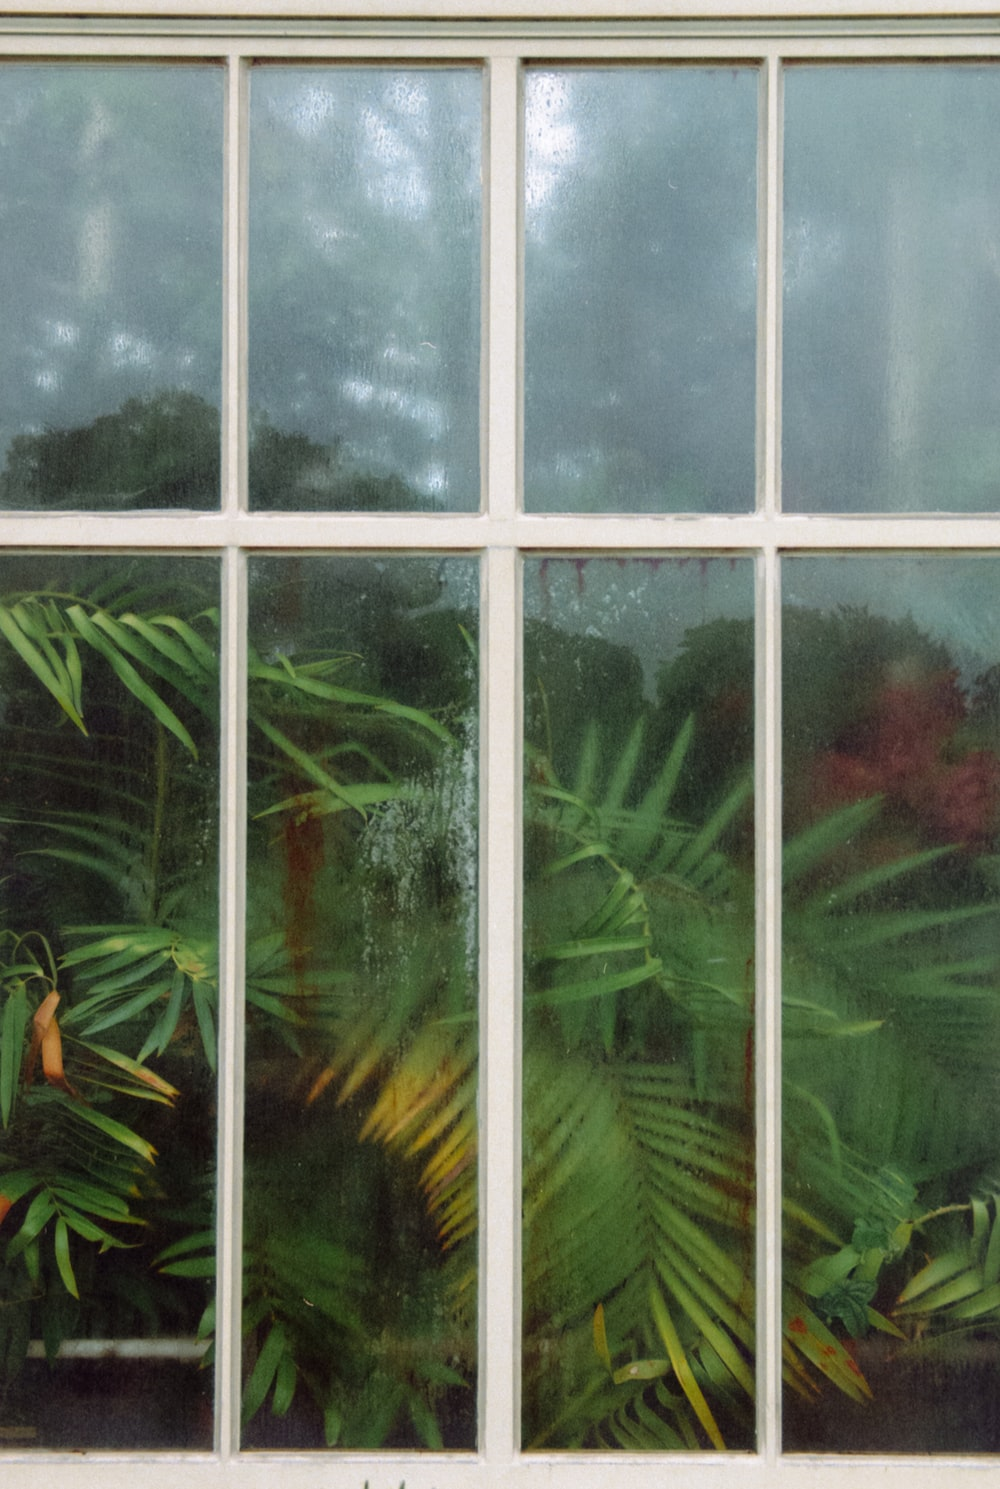 clear glass window with white wooden pane